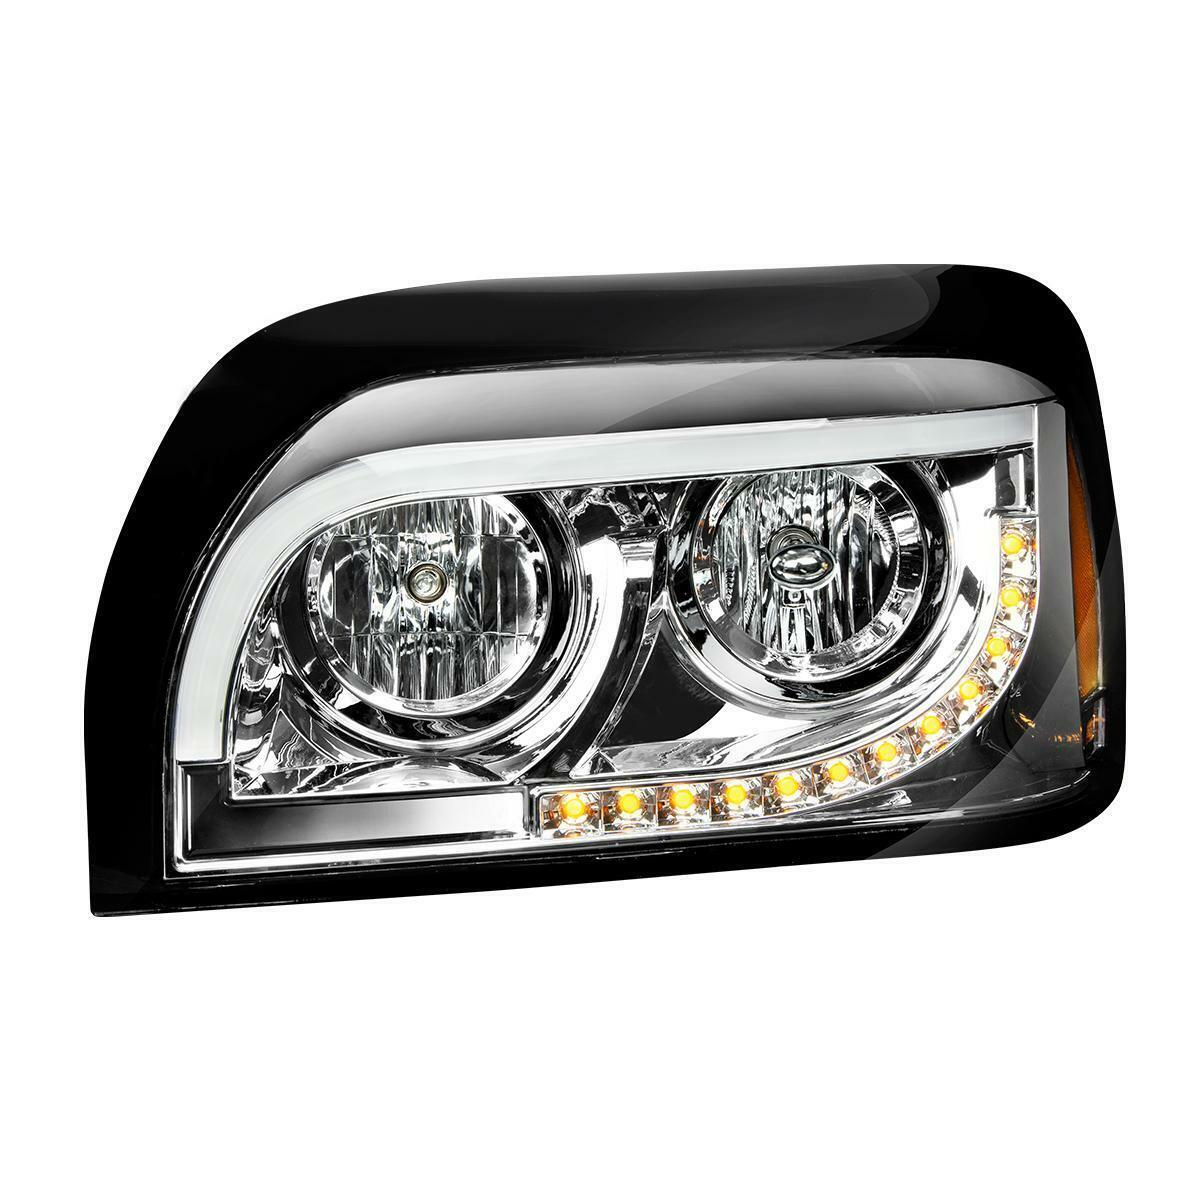 ::Freightliner Century 1996-2010 chrome Projection Headlight pair Driver Passenger